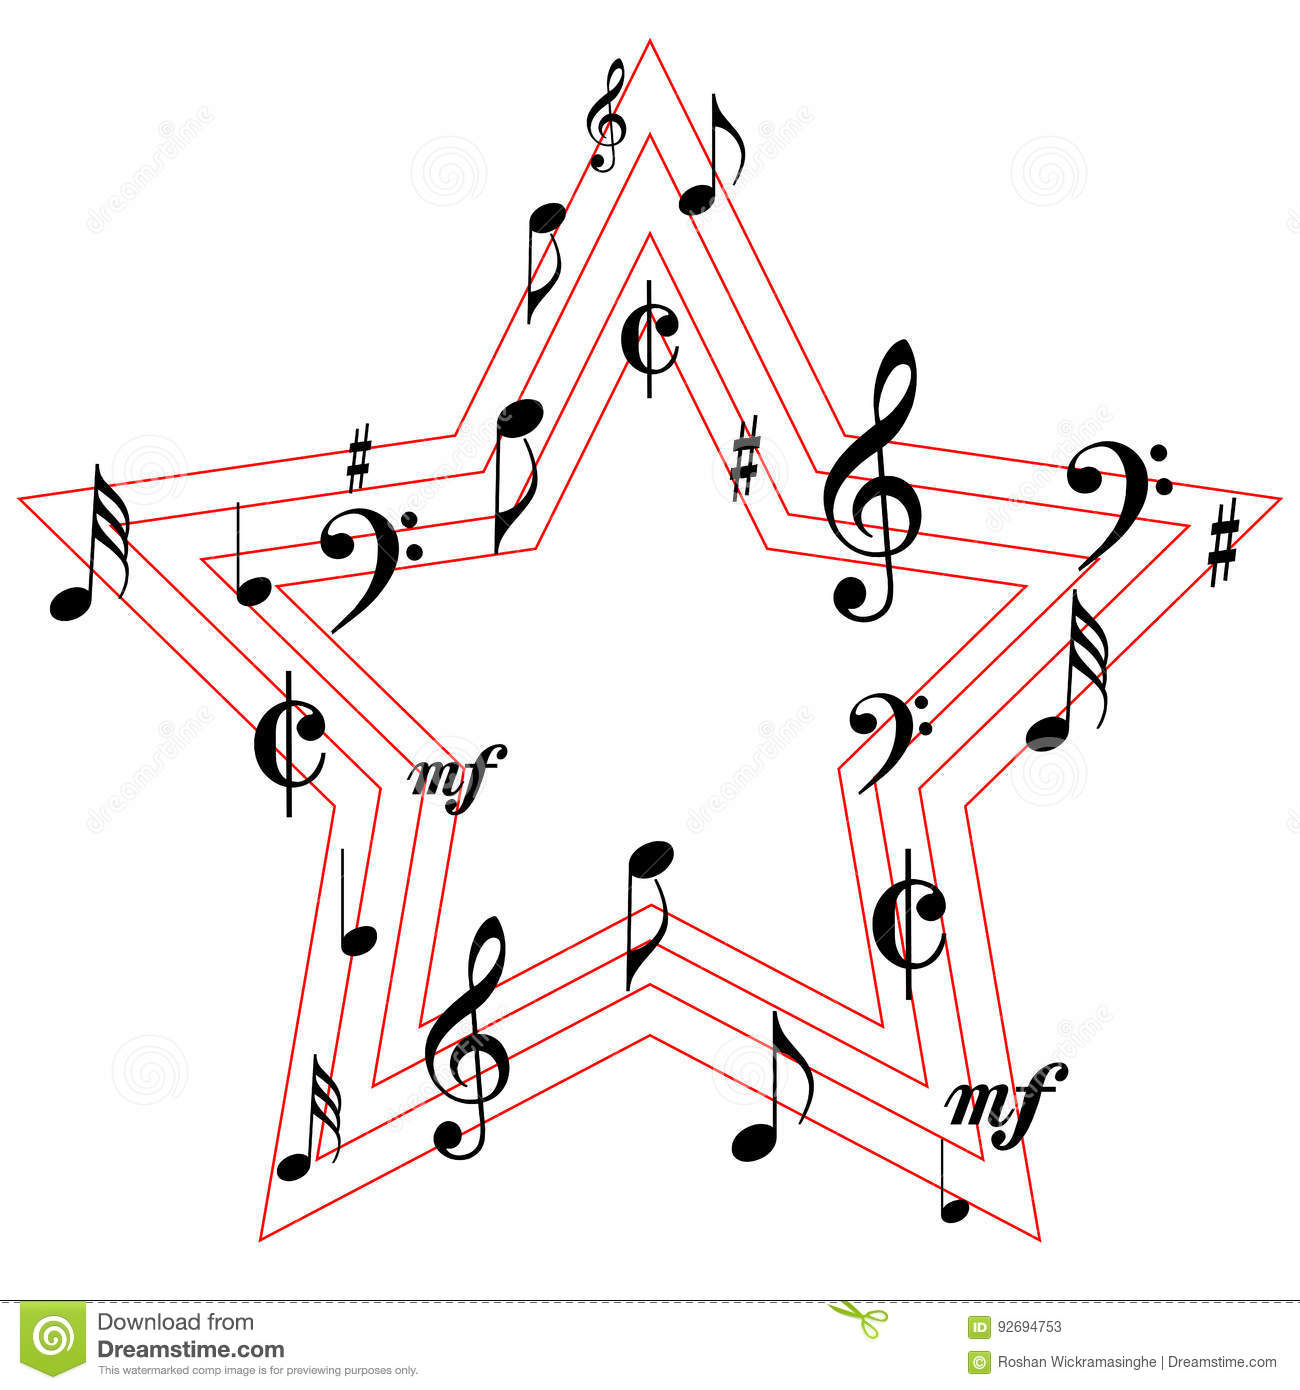 Music Symbols Star Icons Stock Vector Illustration Of Octave 92694753